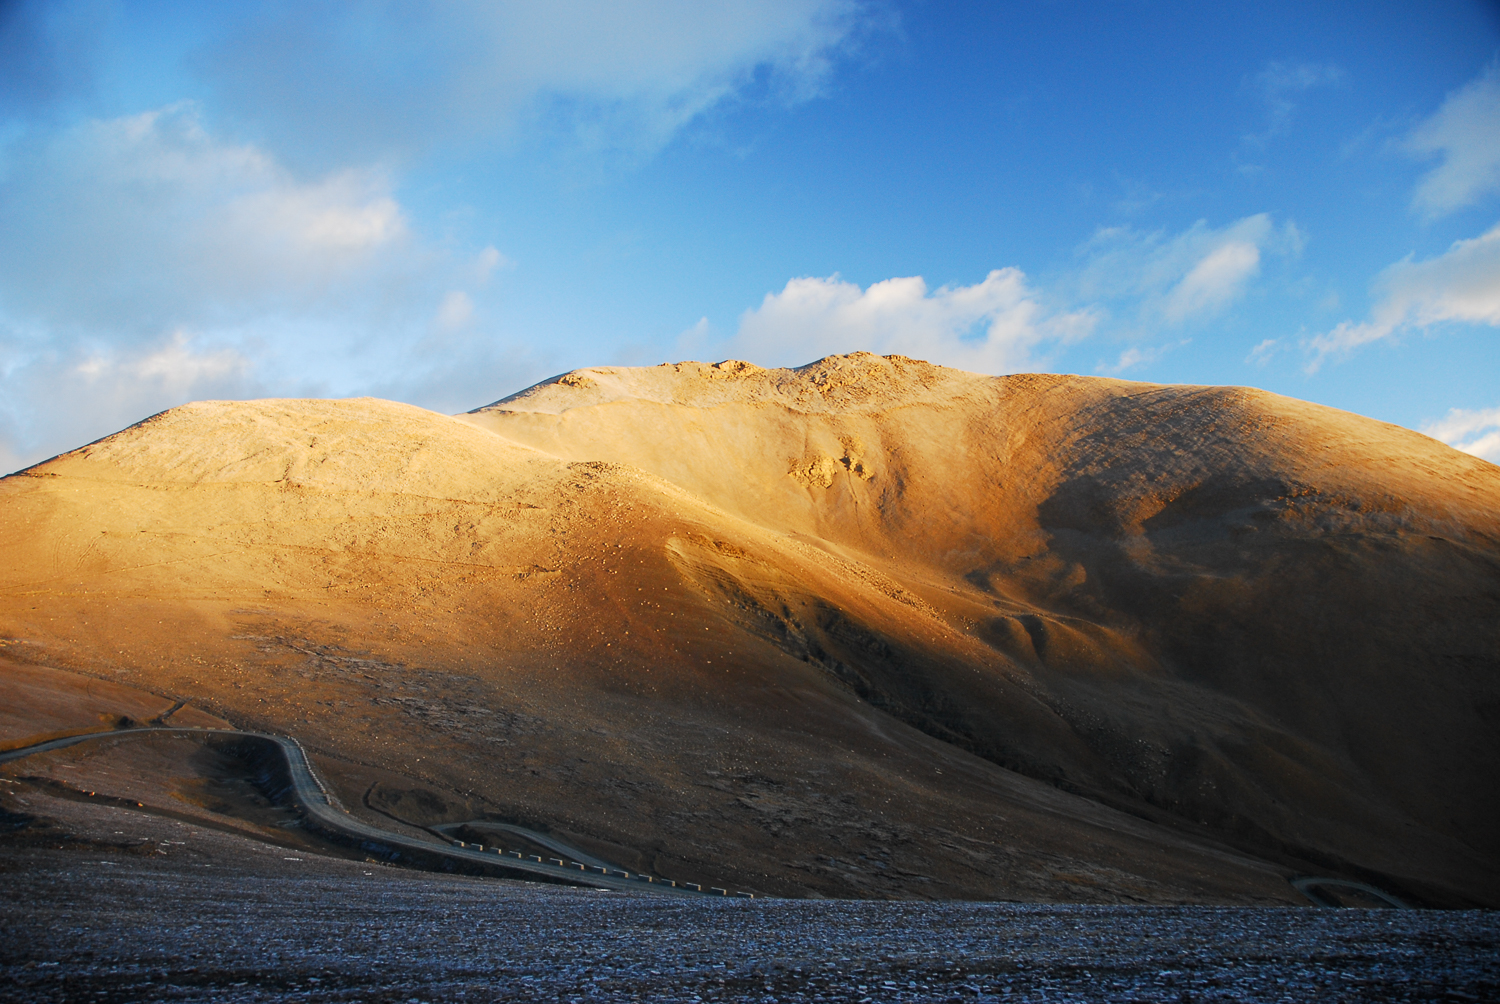 The arid and brown landscape of the Tibetan Plateau sits in stark contrast to the blue skies above it.